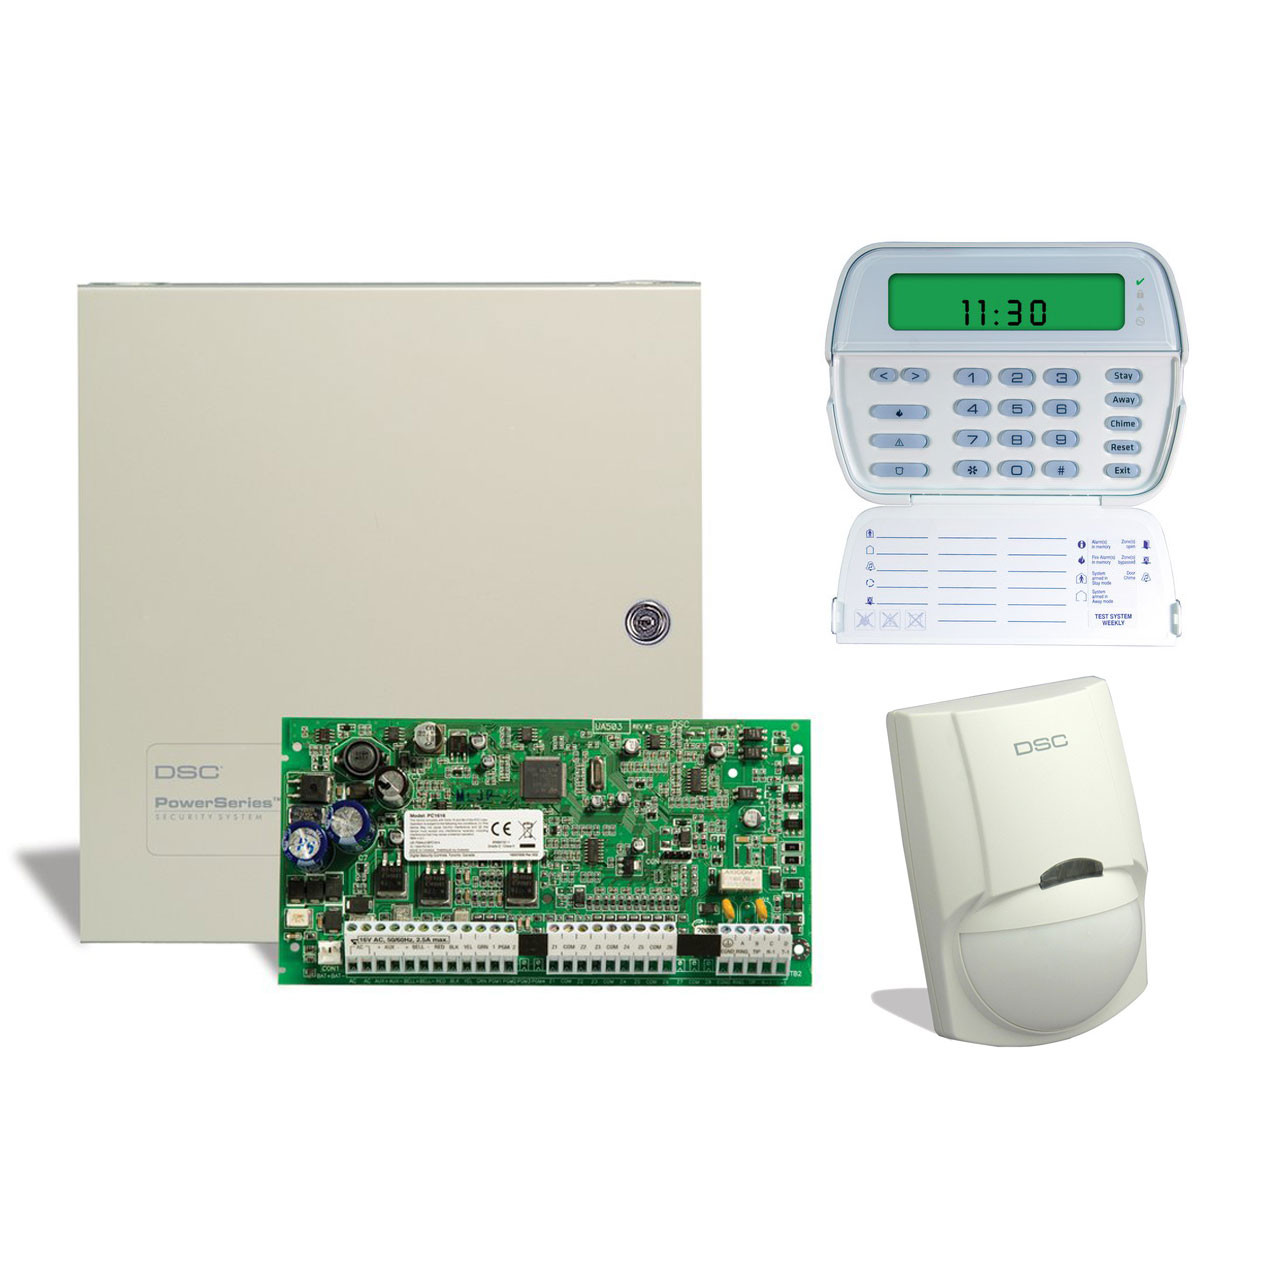 dsc 6 zone alarm kit with keypad and motion detector tremtech rh store tremtech com dsc alarm system user manual dsc alarm pk5500 user manual